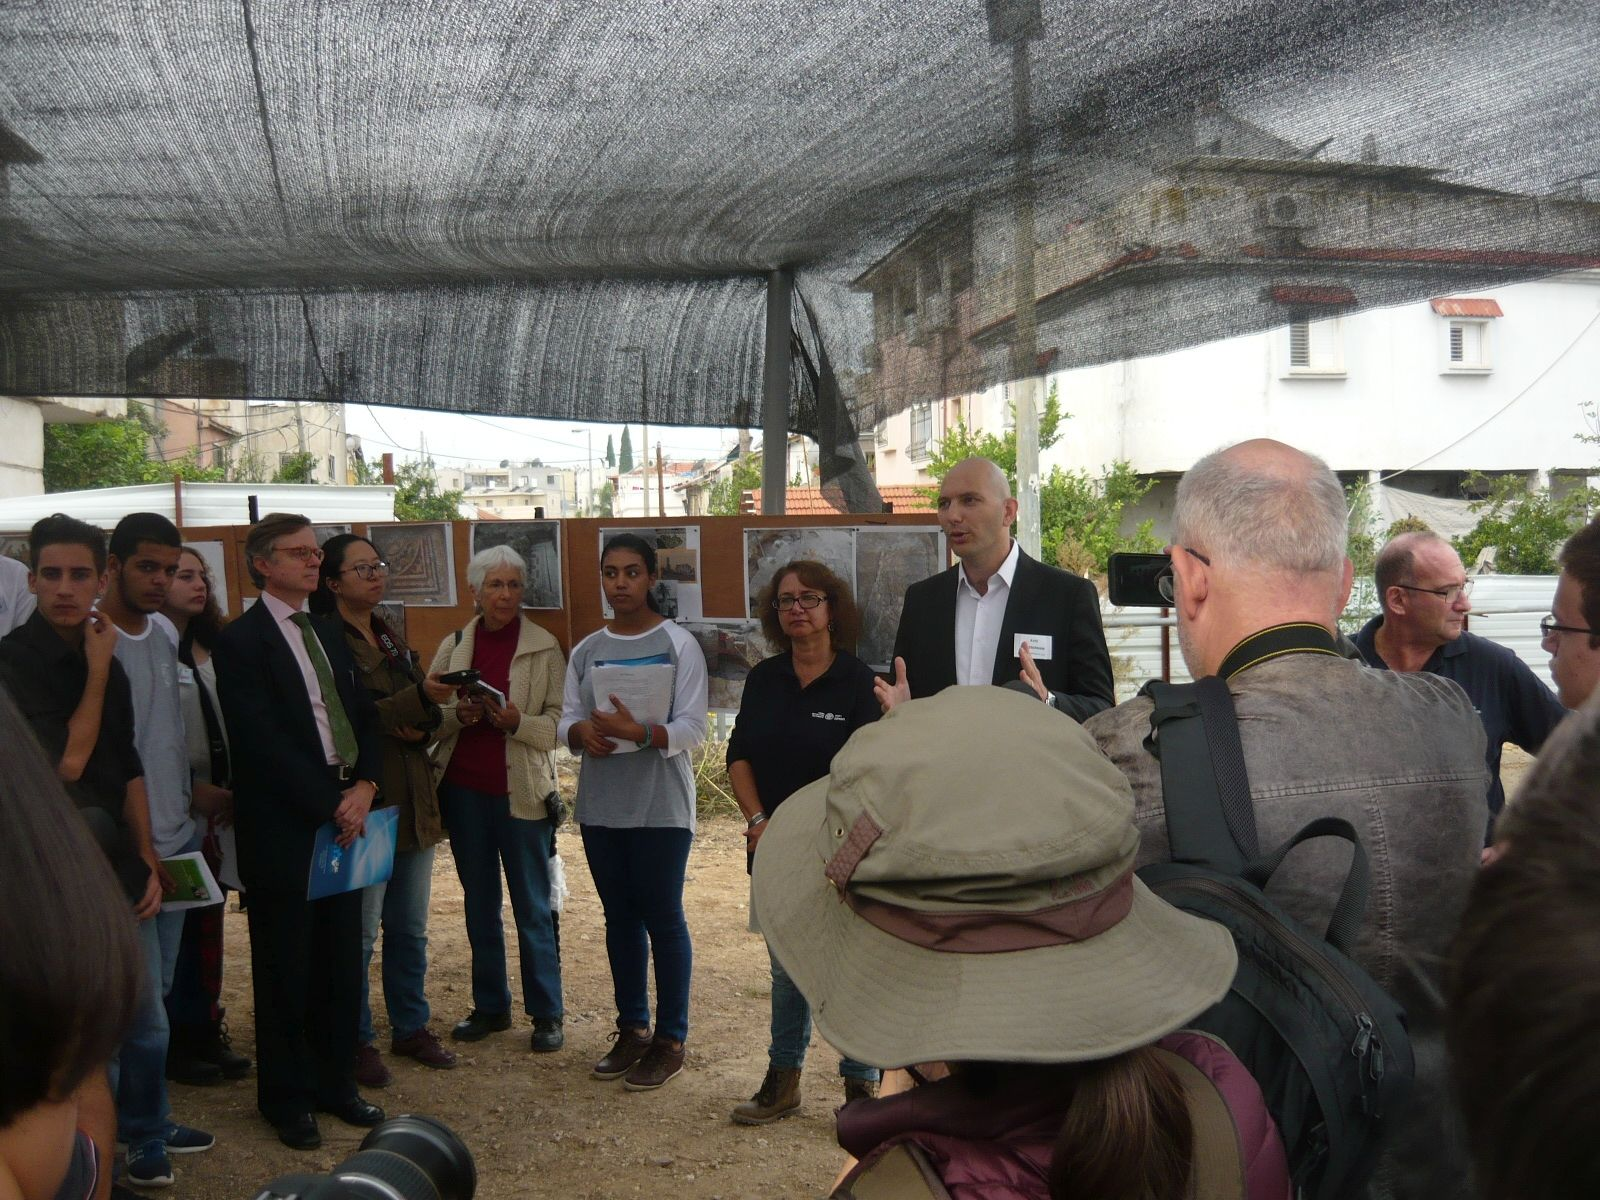 Archaeologist Hagit Torgë and Deputy Mayor Aviv Wasserman speaking with reporters at the unveiling of the newest Lod mosaic. Photo by Ester Ochigava Moshe